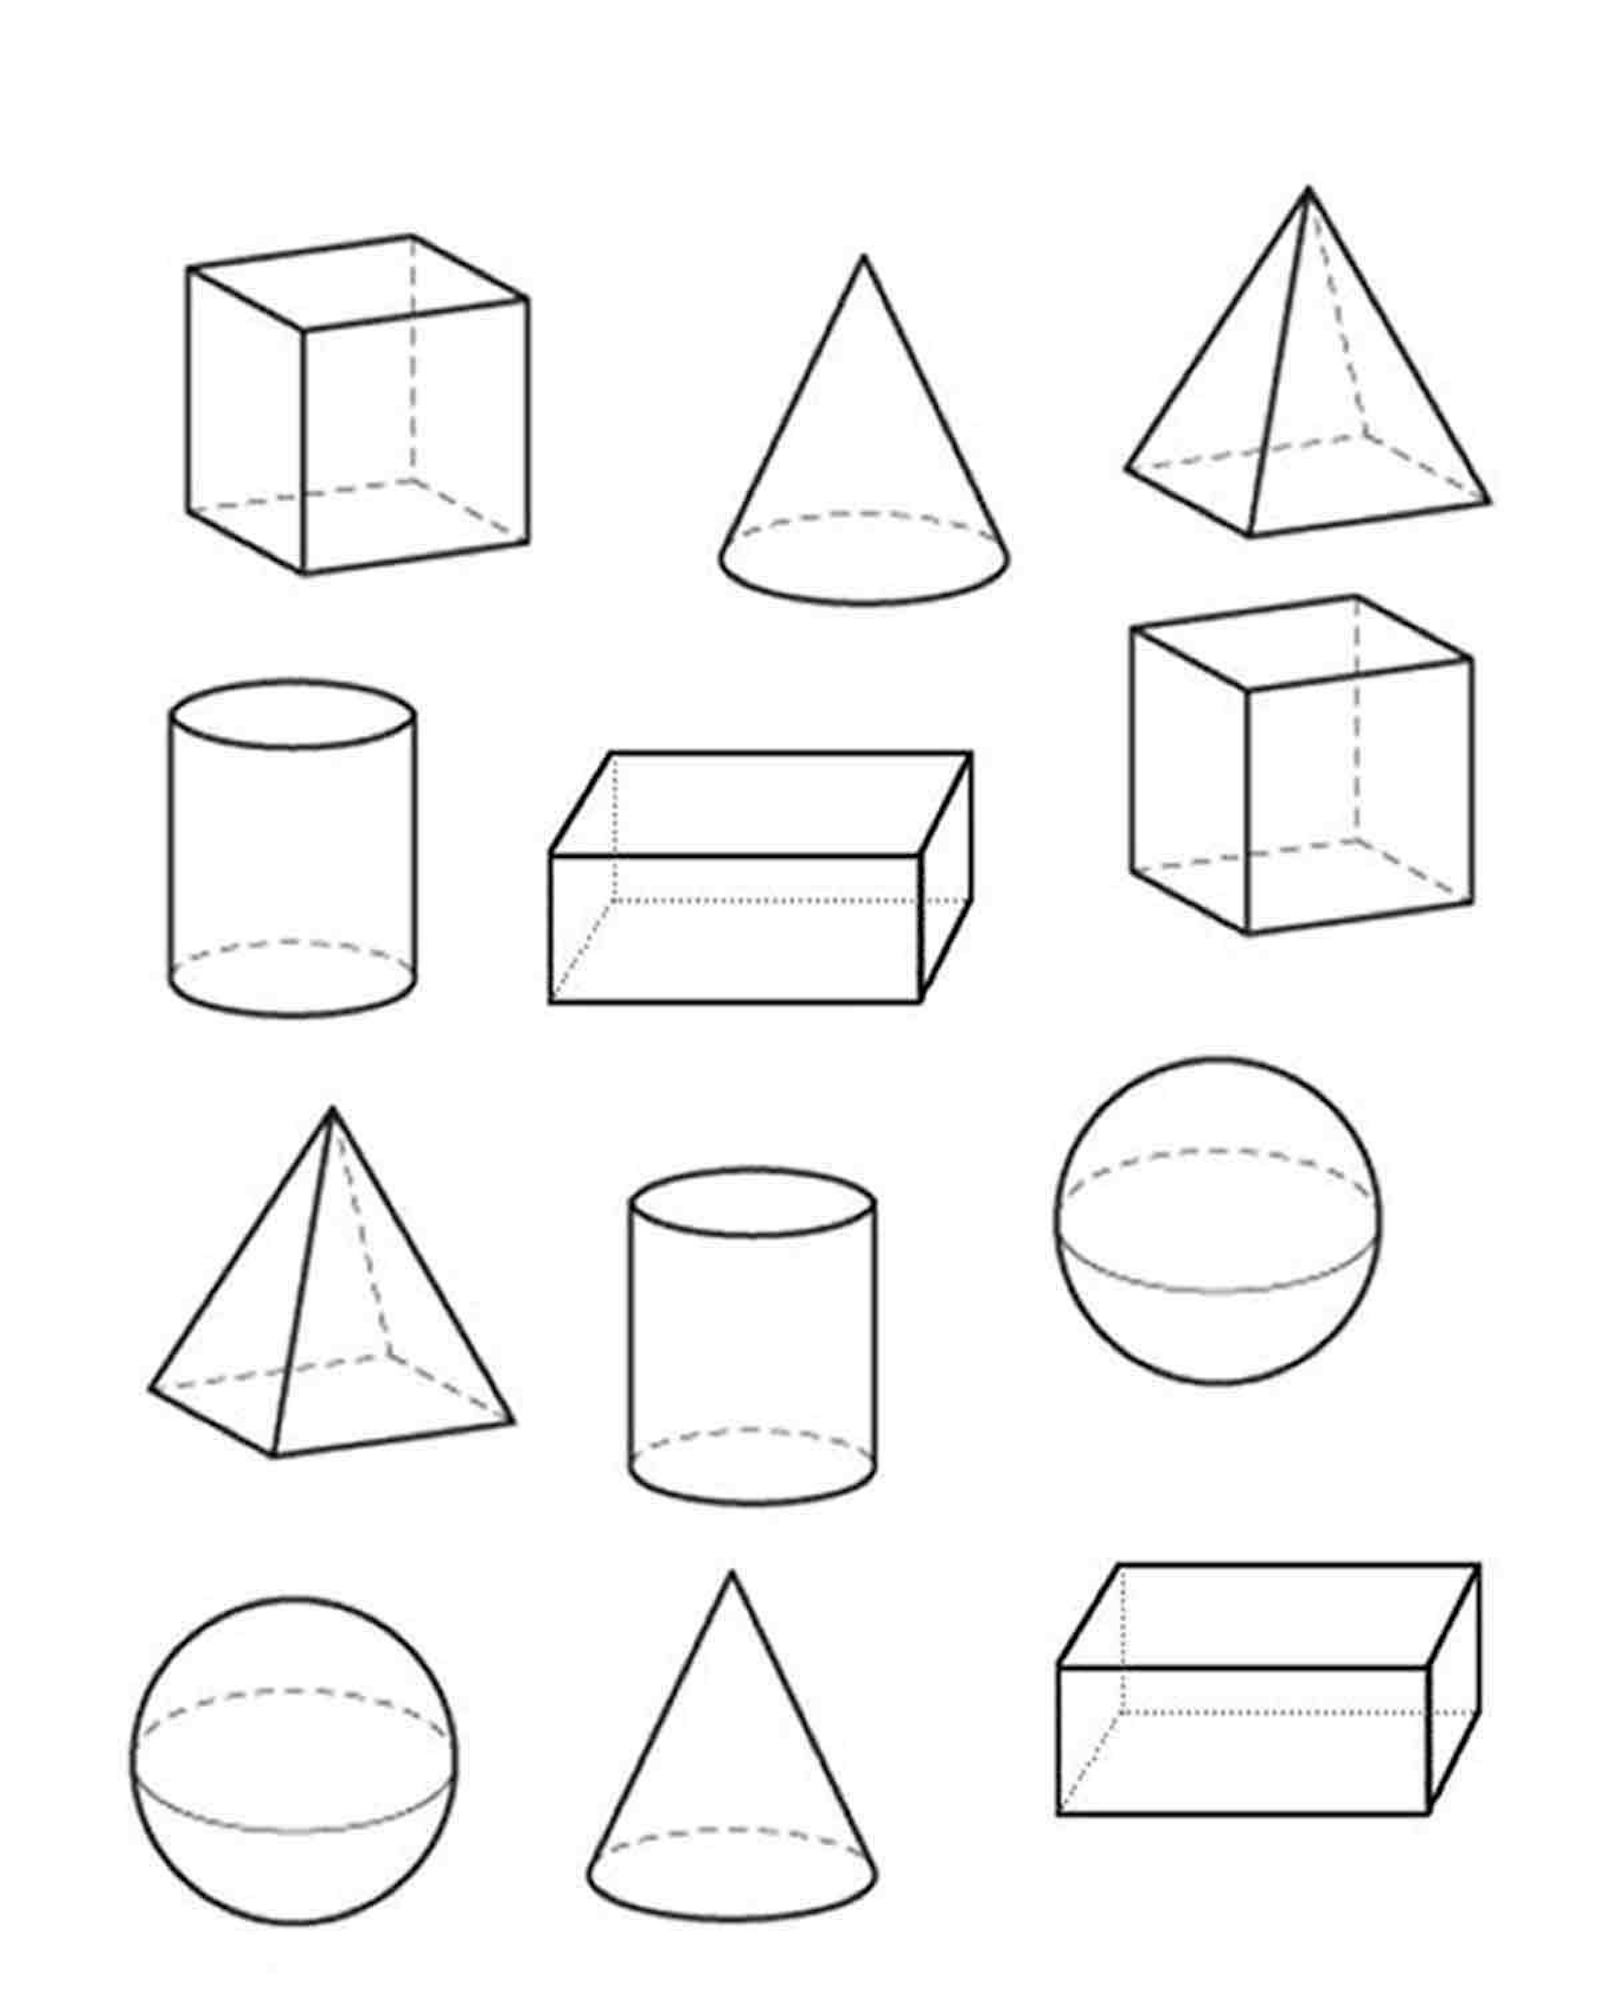 shapes images for coloring free basic shapes coloring pages printable basic shapes images coloring for shapes